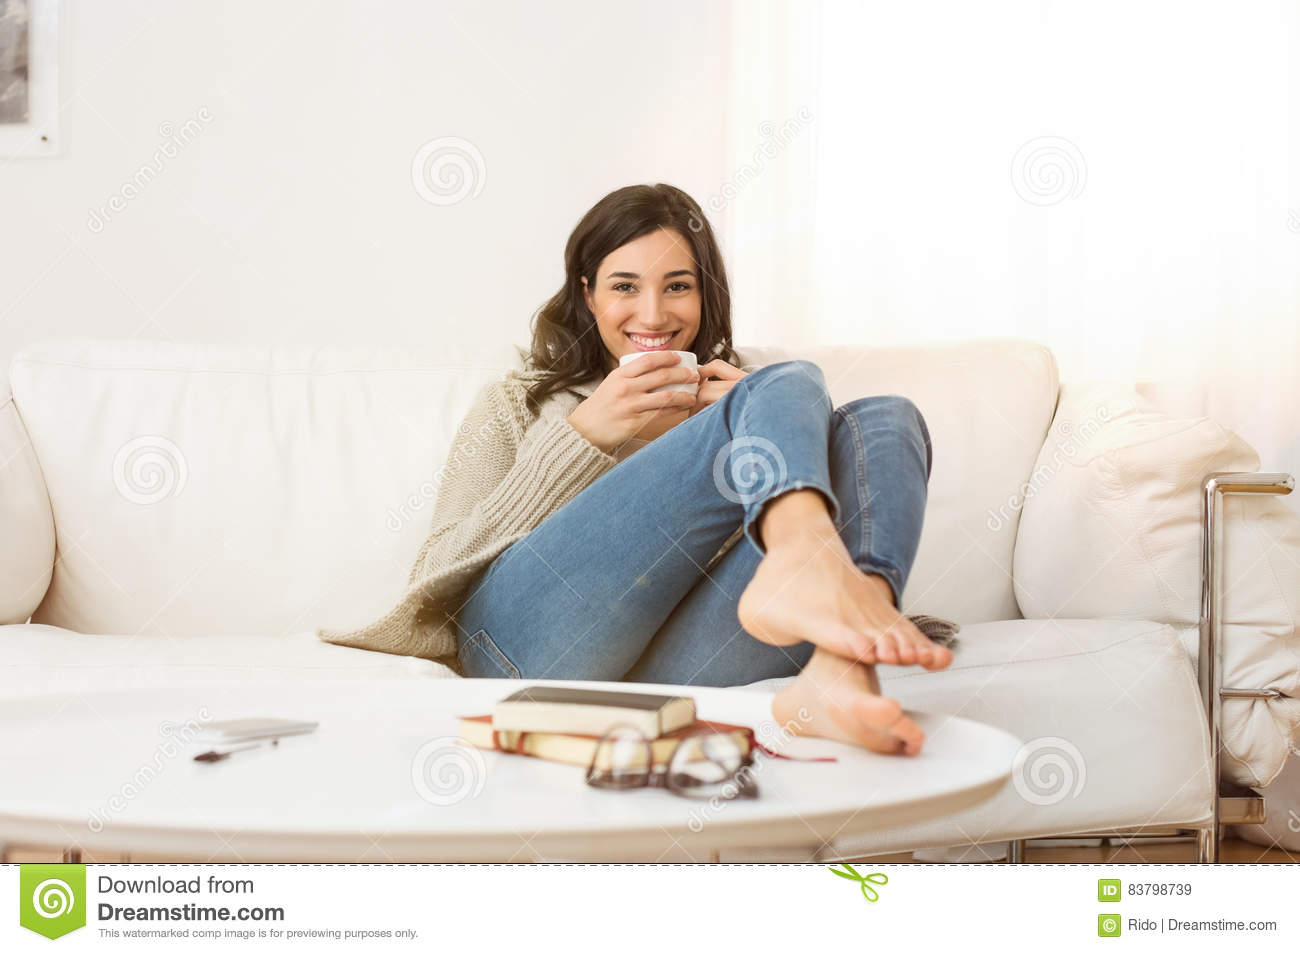 woman relaxing at home stock image image of winter. Black Bedroom Furniture Sets. Home Design Ideas